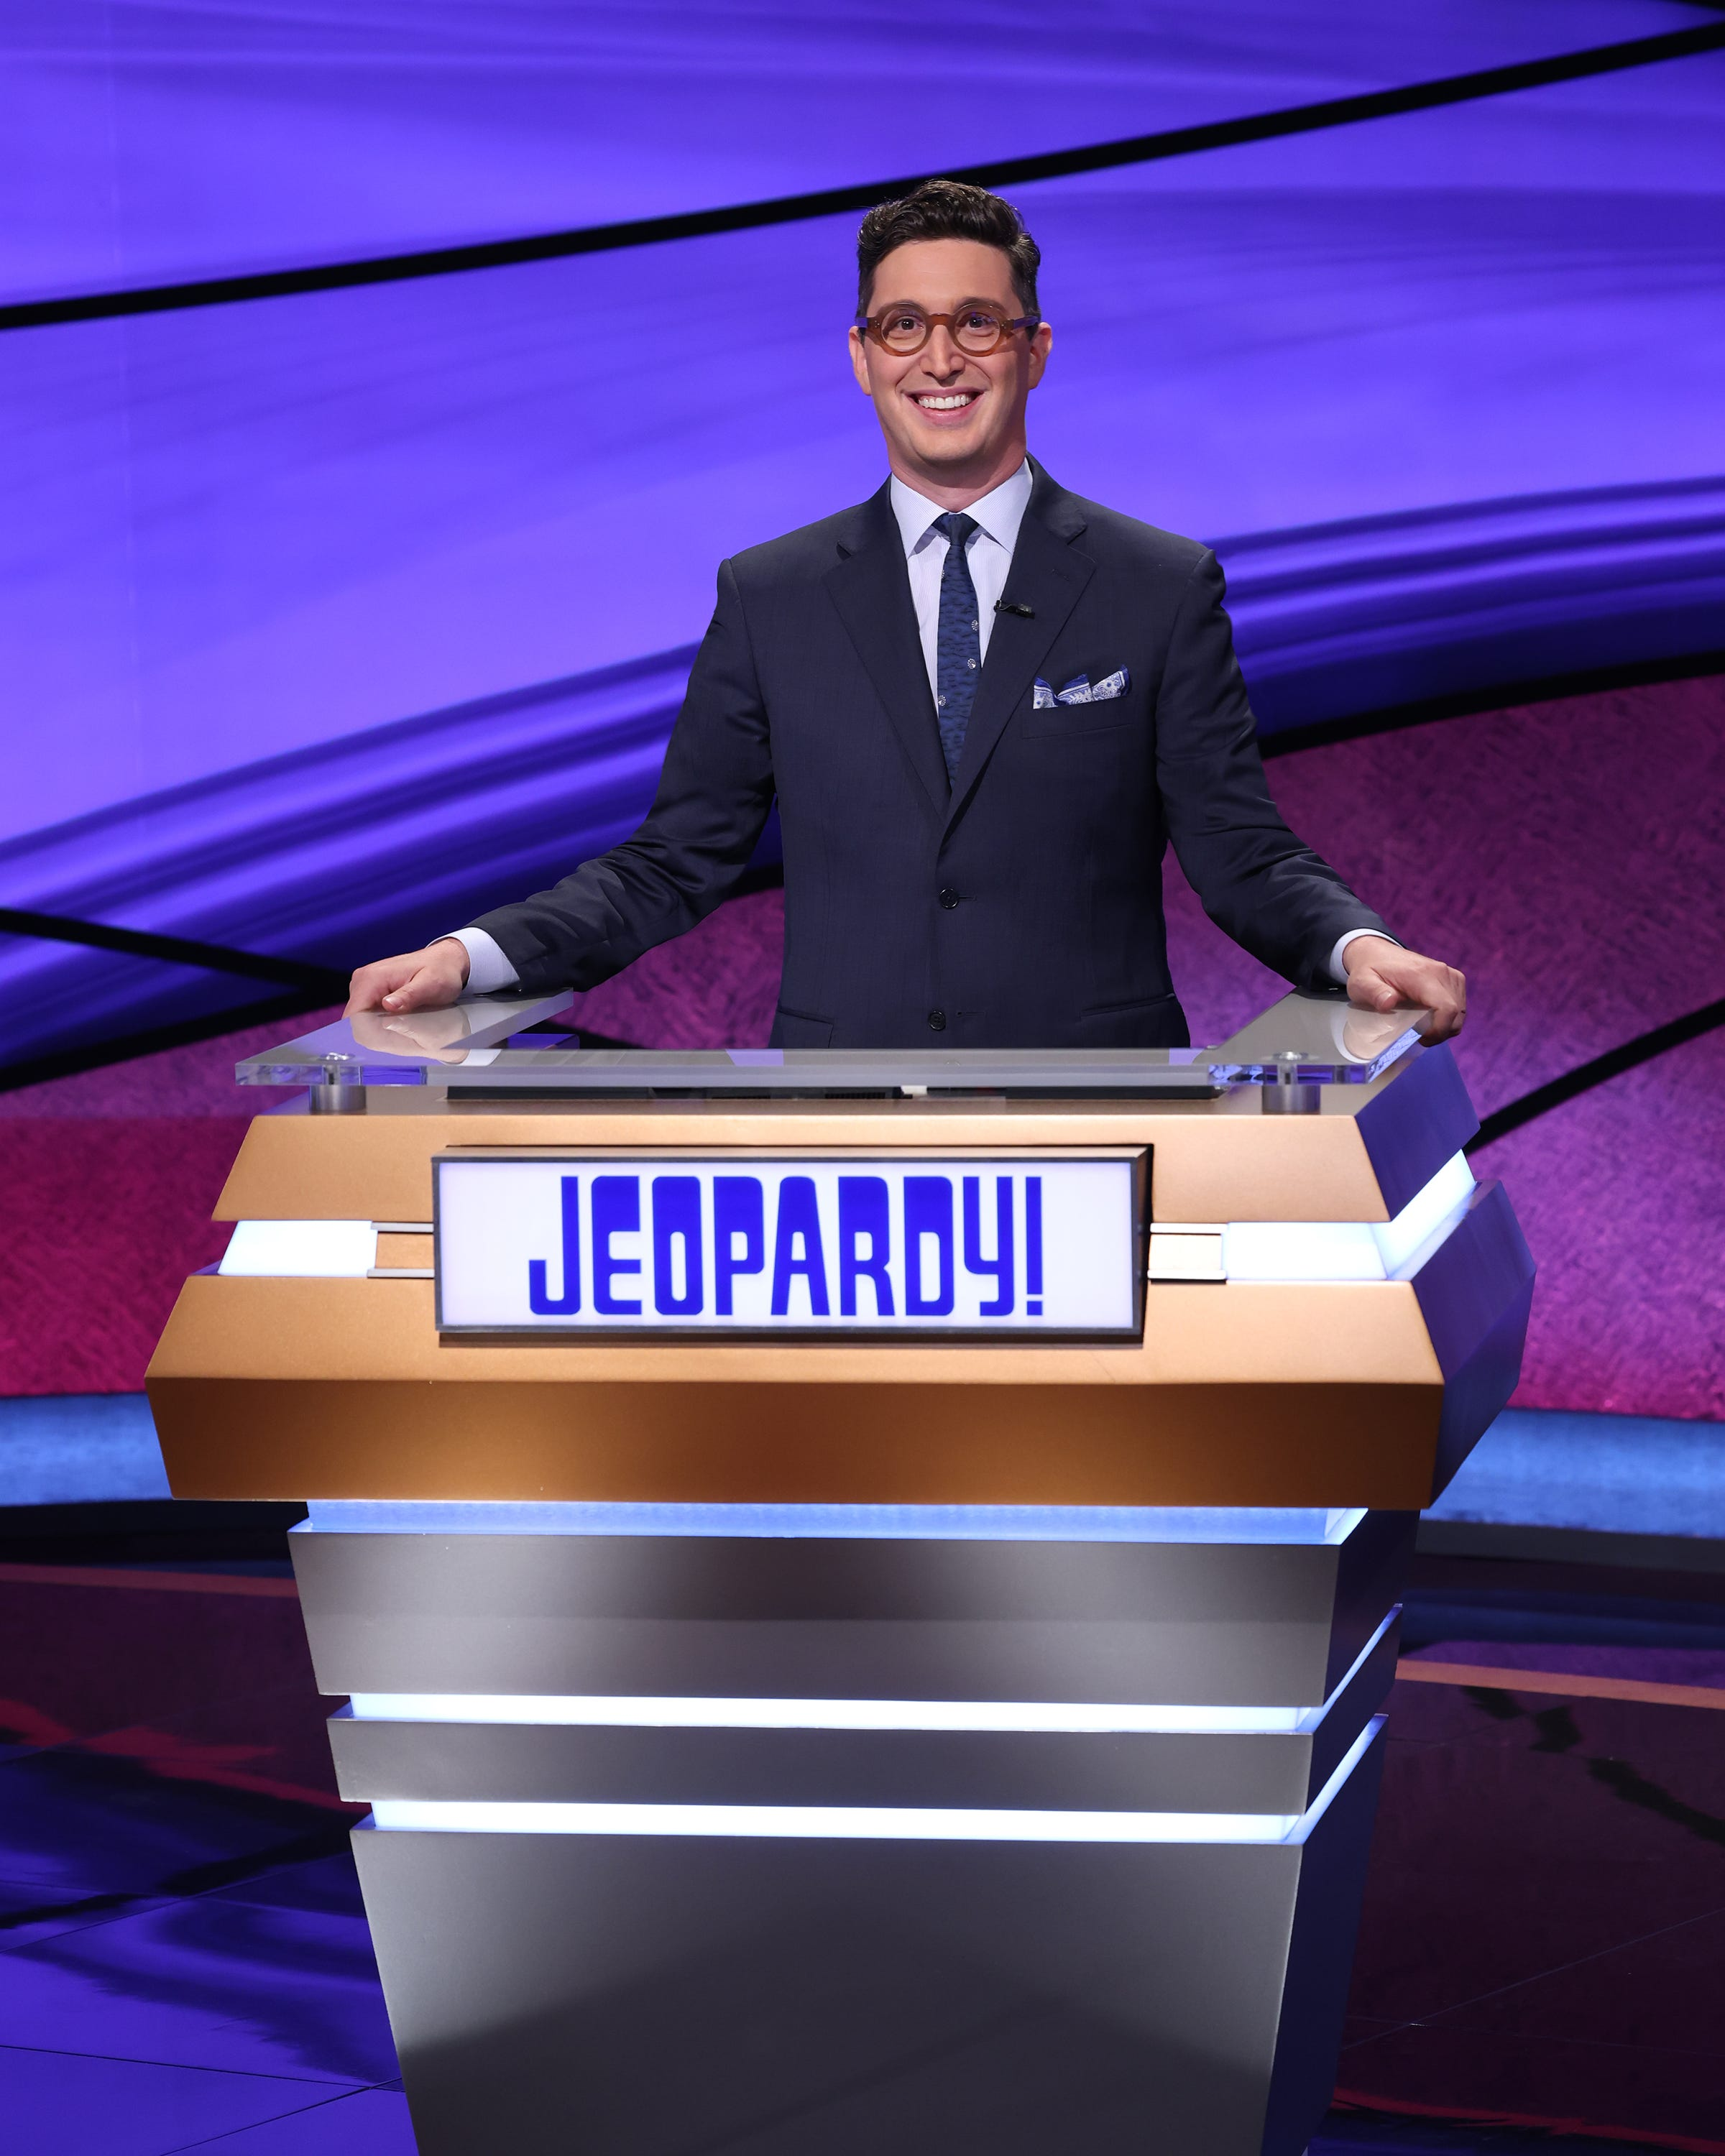 'Jeopardy!': 'It's the most emotional Tournament of Champions you'll see'